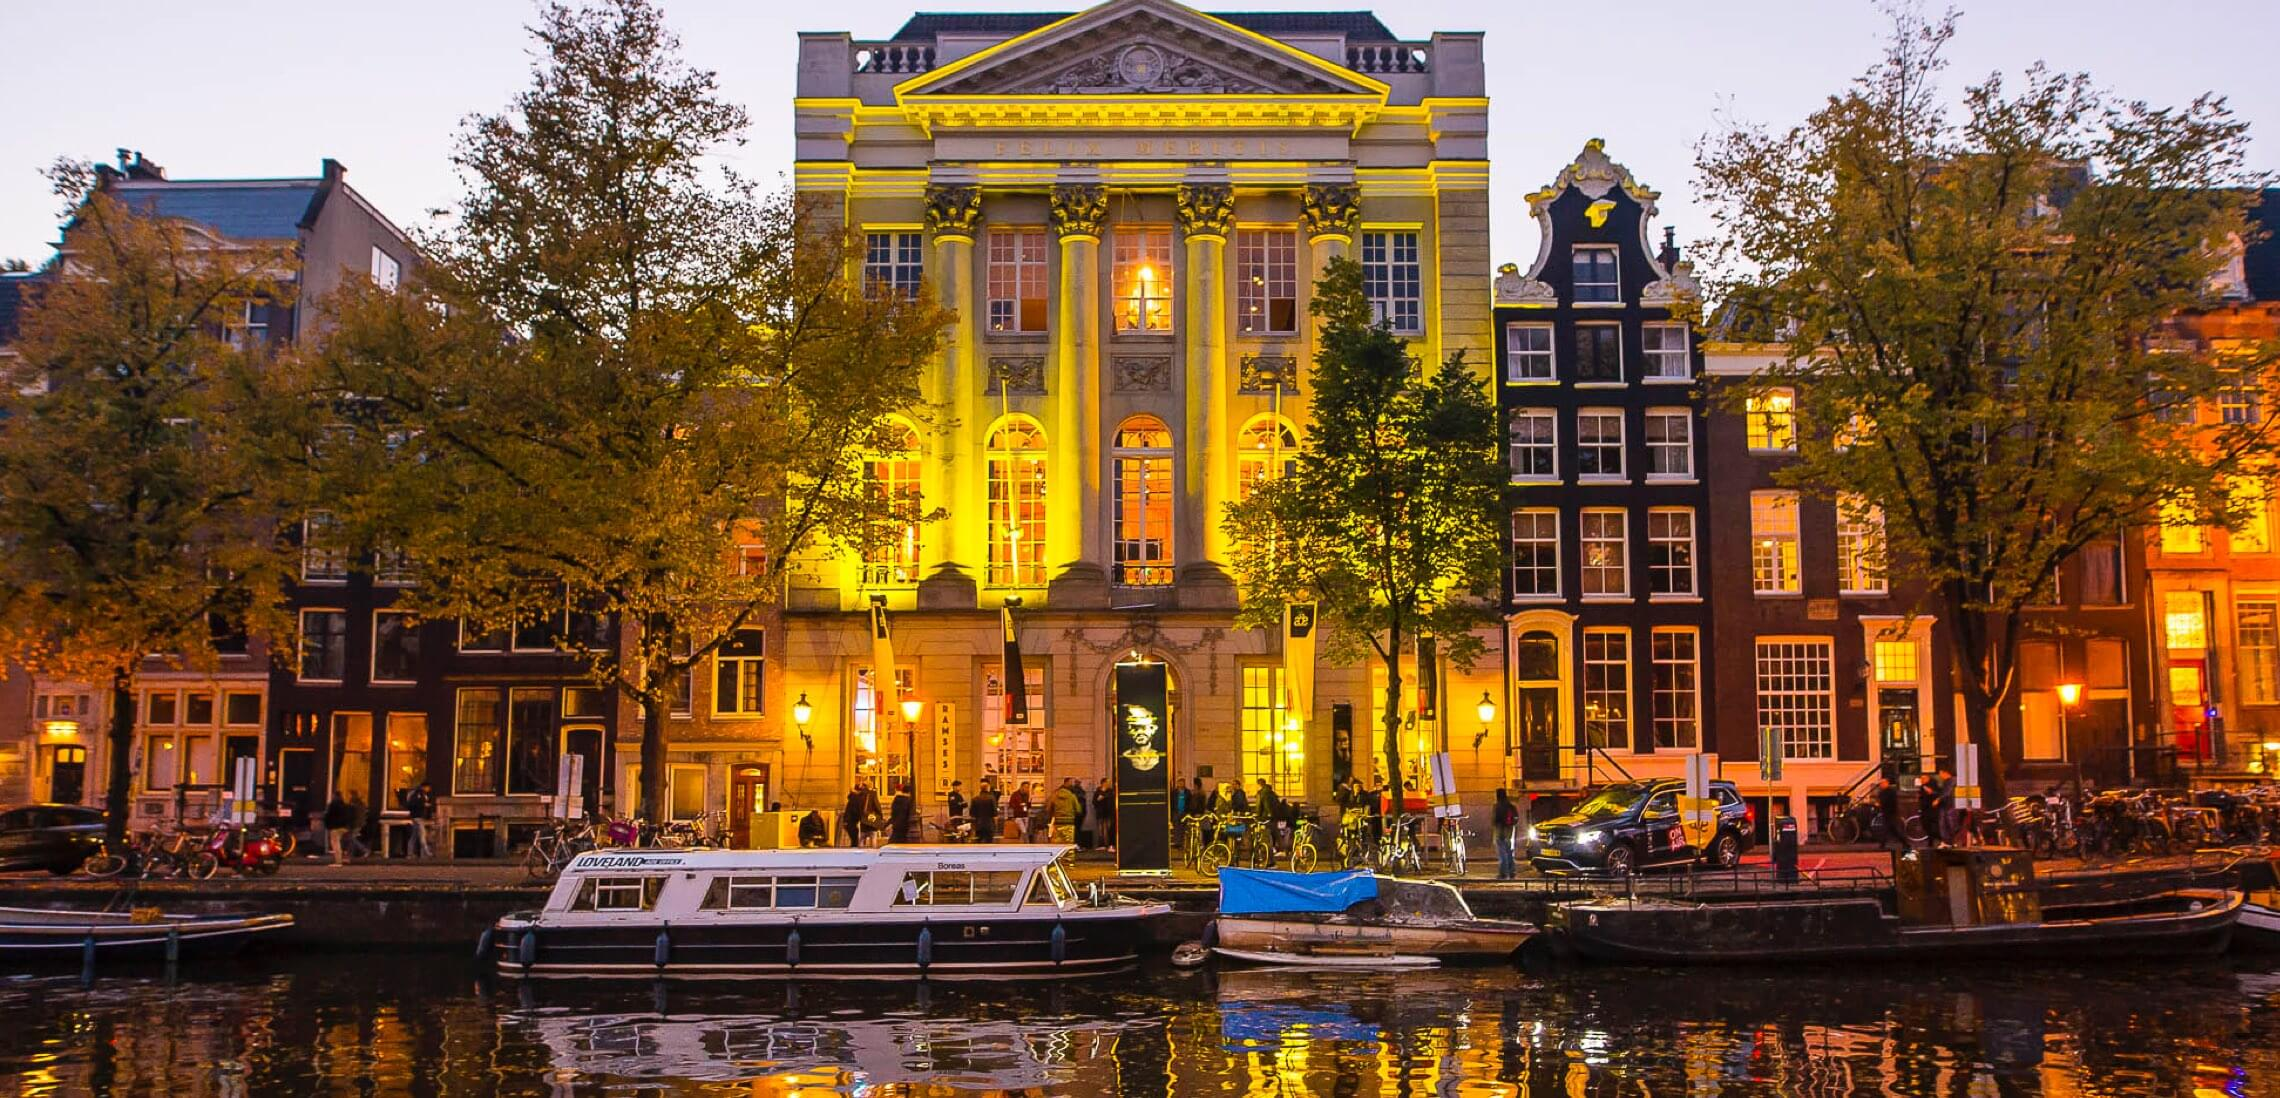 Amsterdam Dance Event Confirms 25th Anniversary Edition of its Conference and Festival